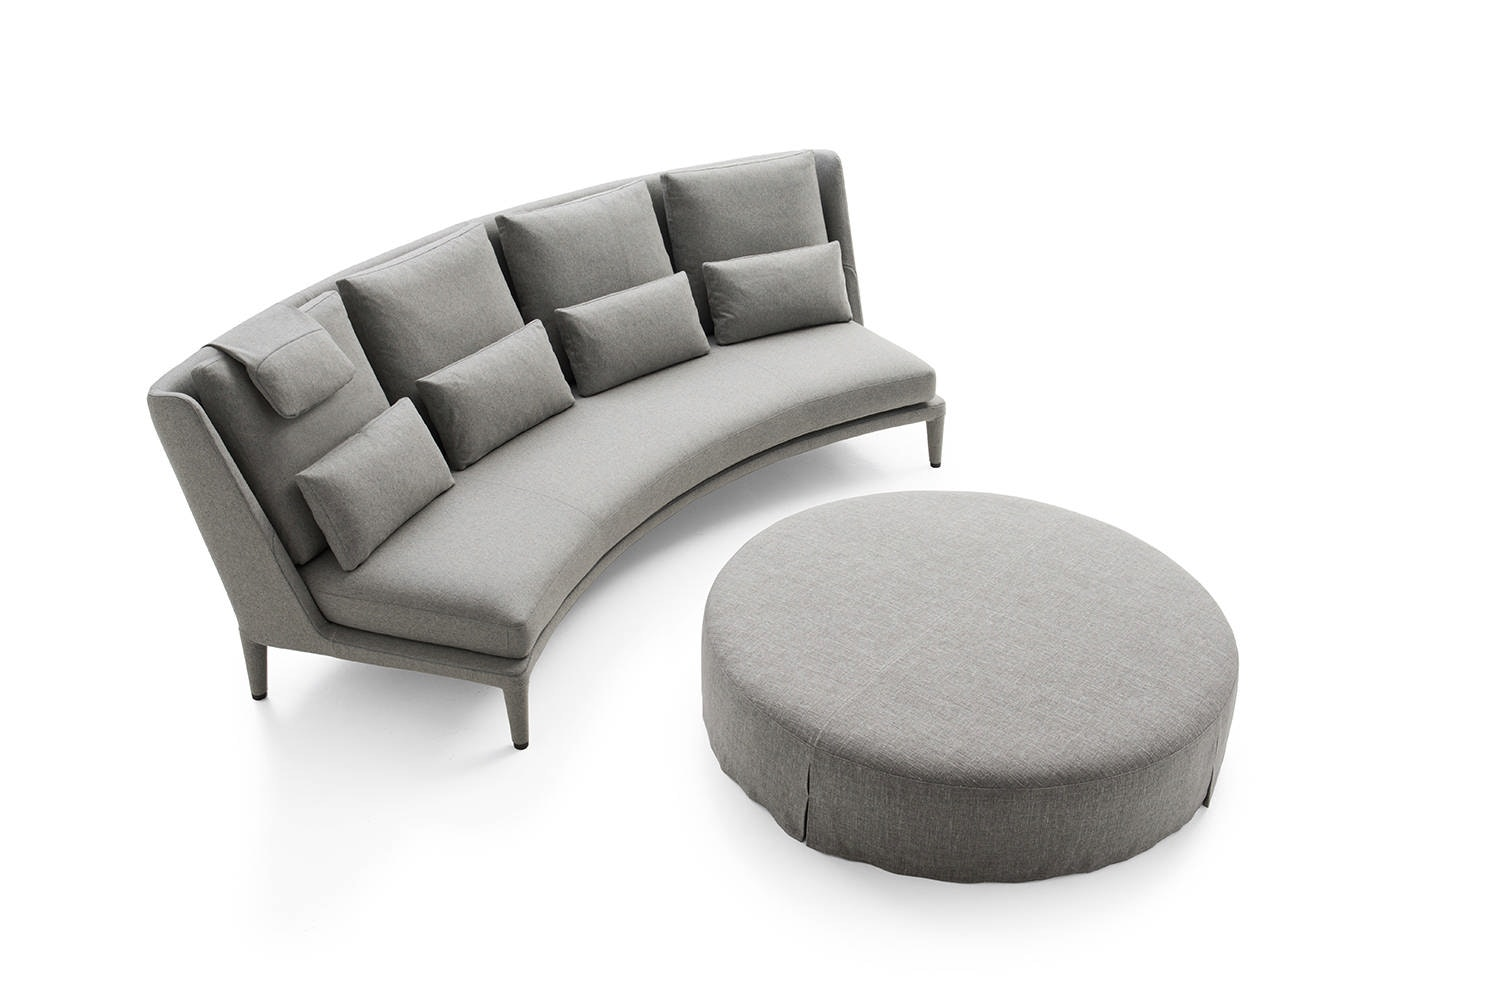 Nidus Sofa by Antonio Citterio for Maxalto